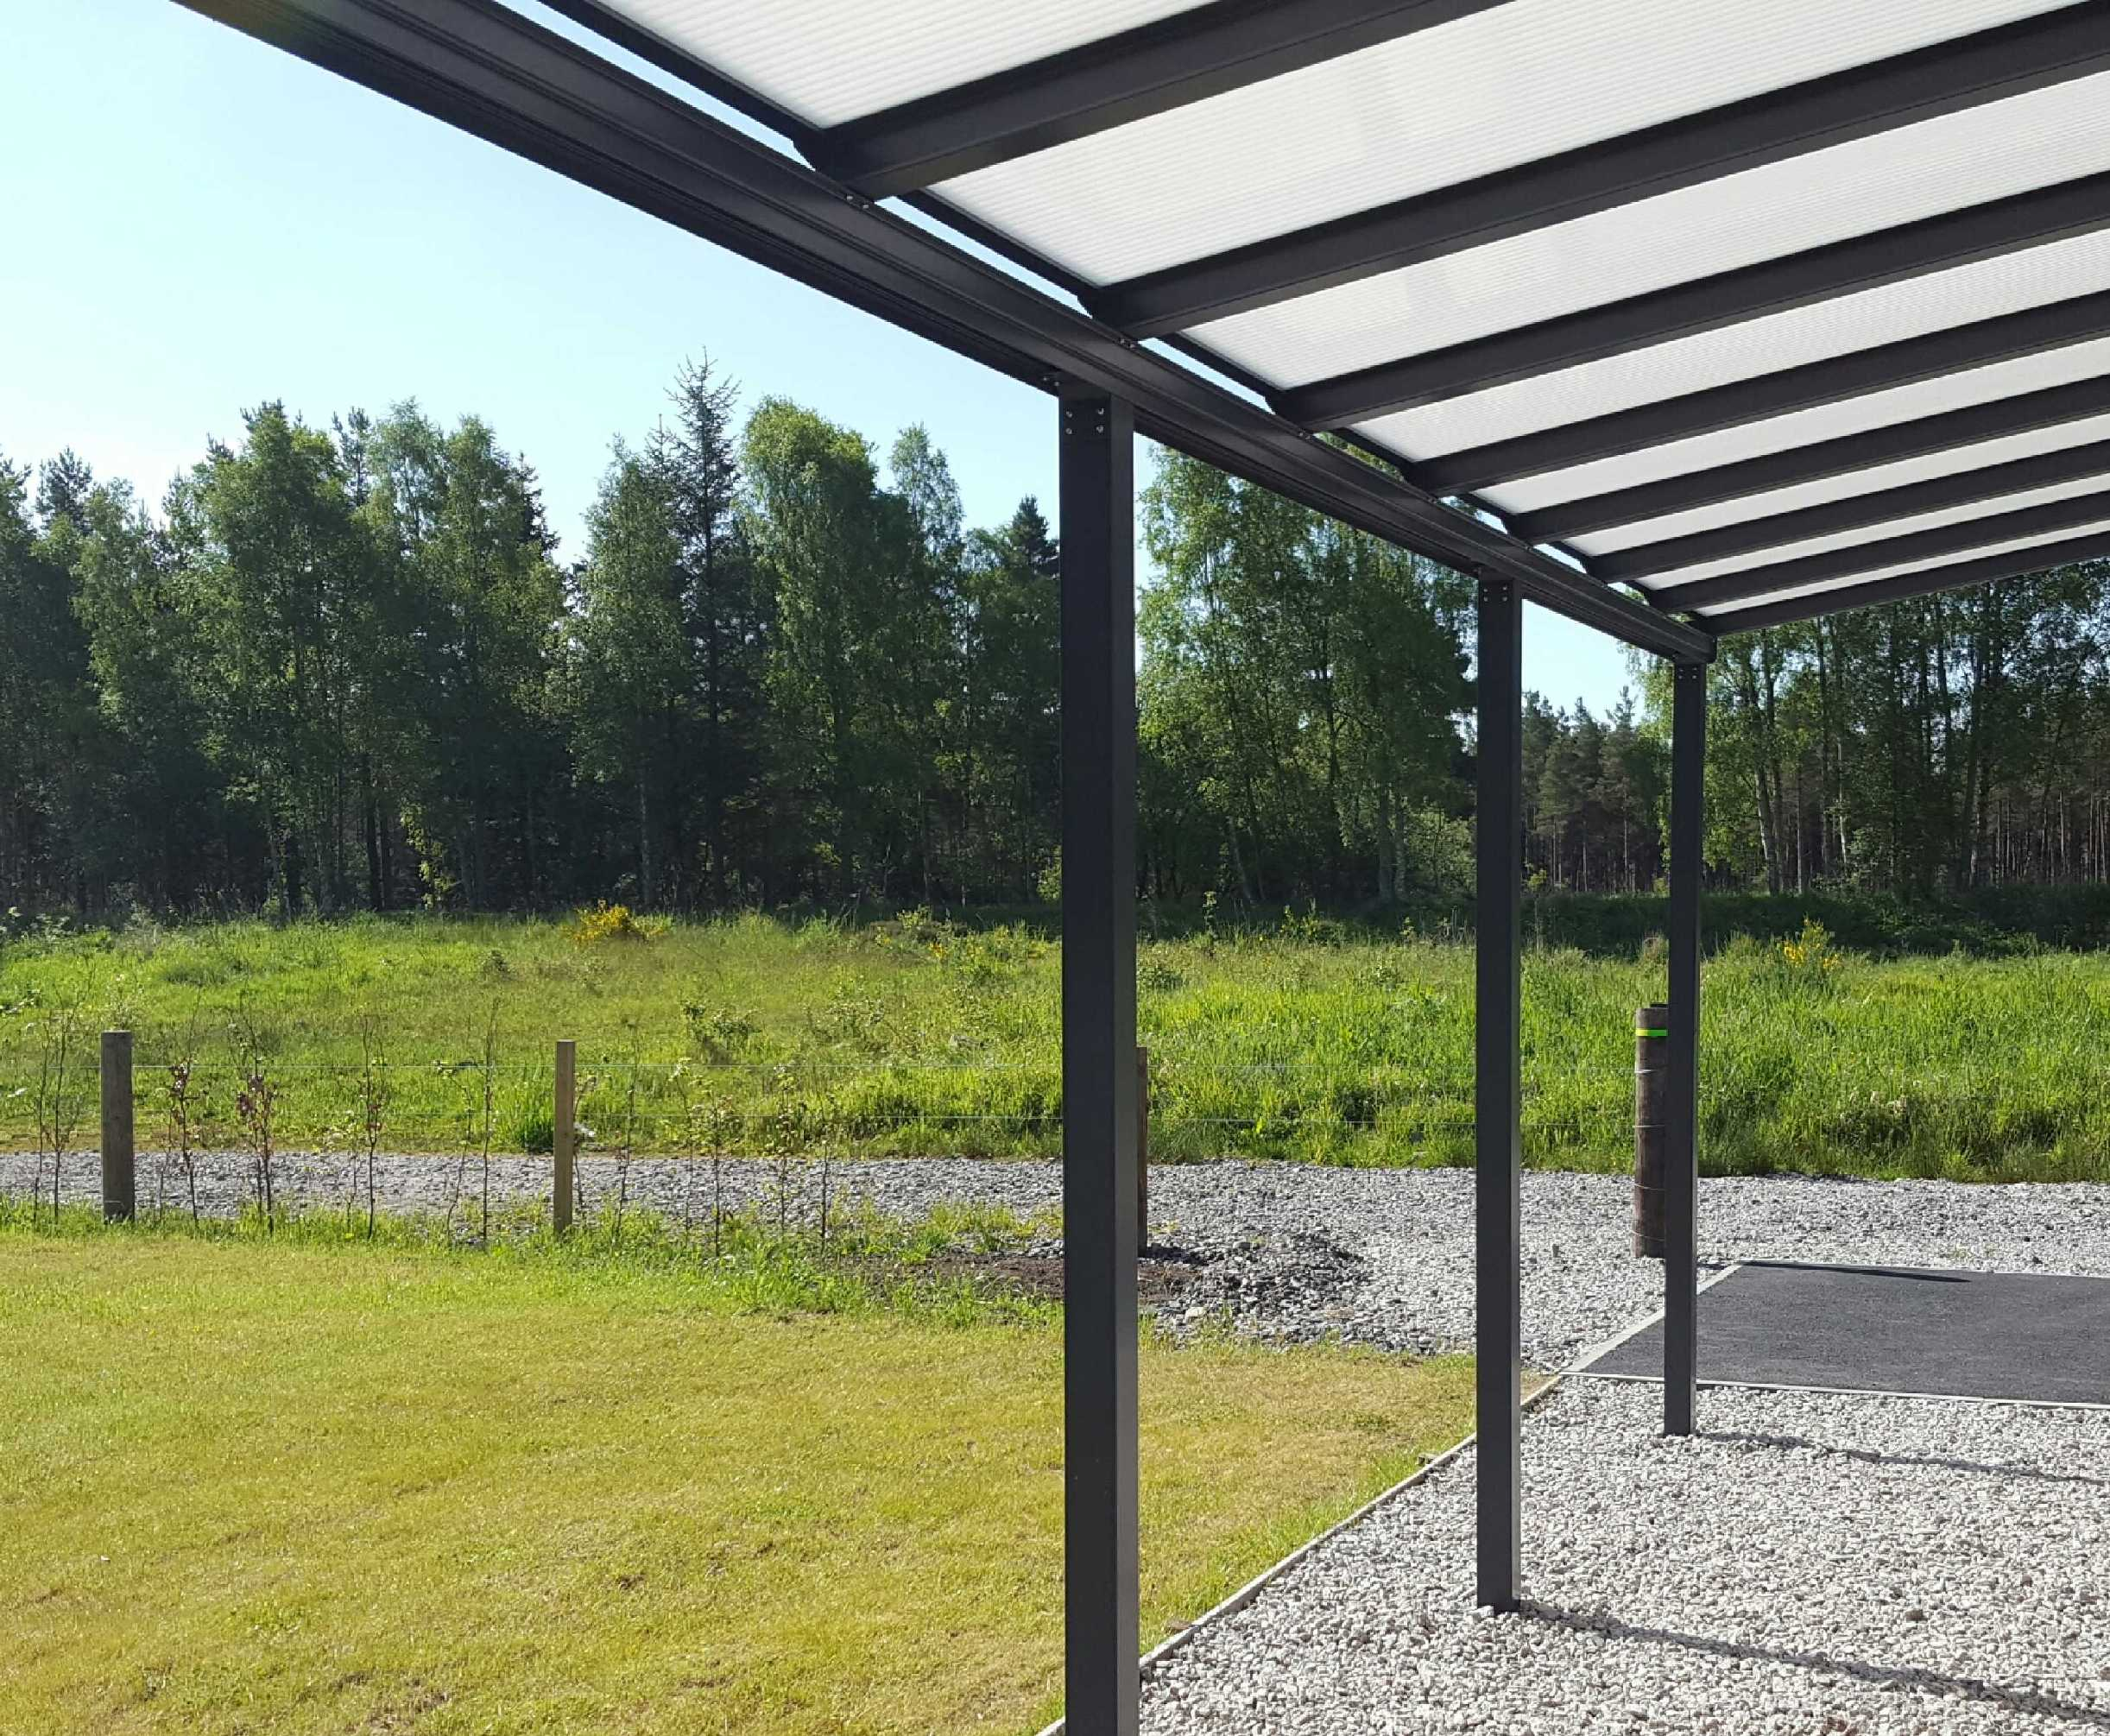 Omega Smart Lean-To Canopy, Anthracite Grey, 16mm Polycarbonate Glazing - 7.4m (W) x 2.5m (P), (4) Supporting Posts